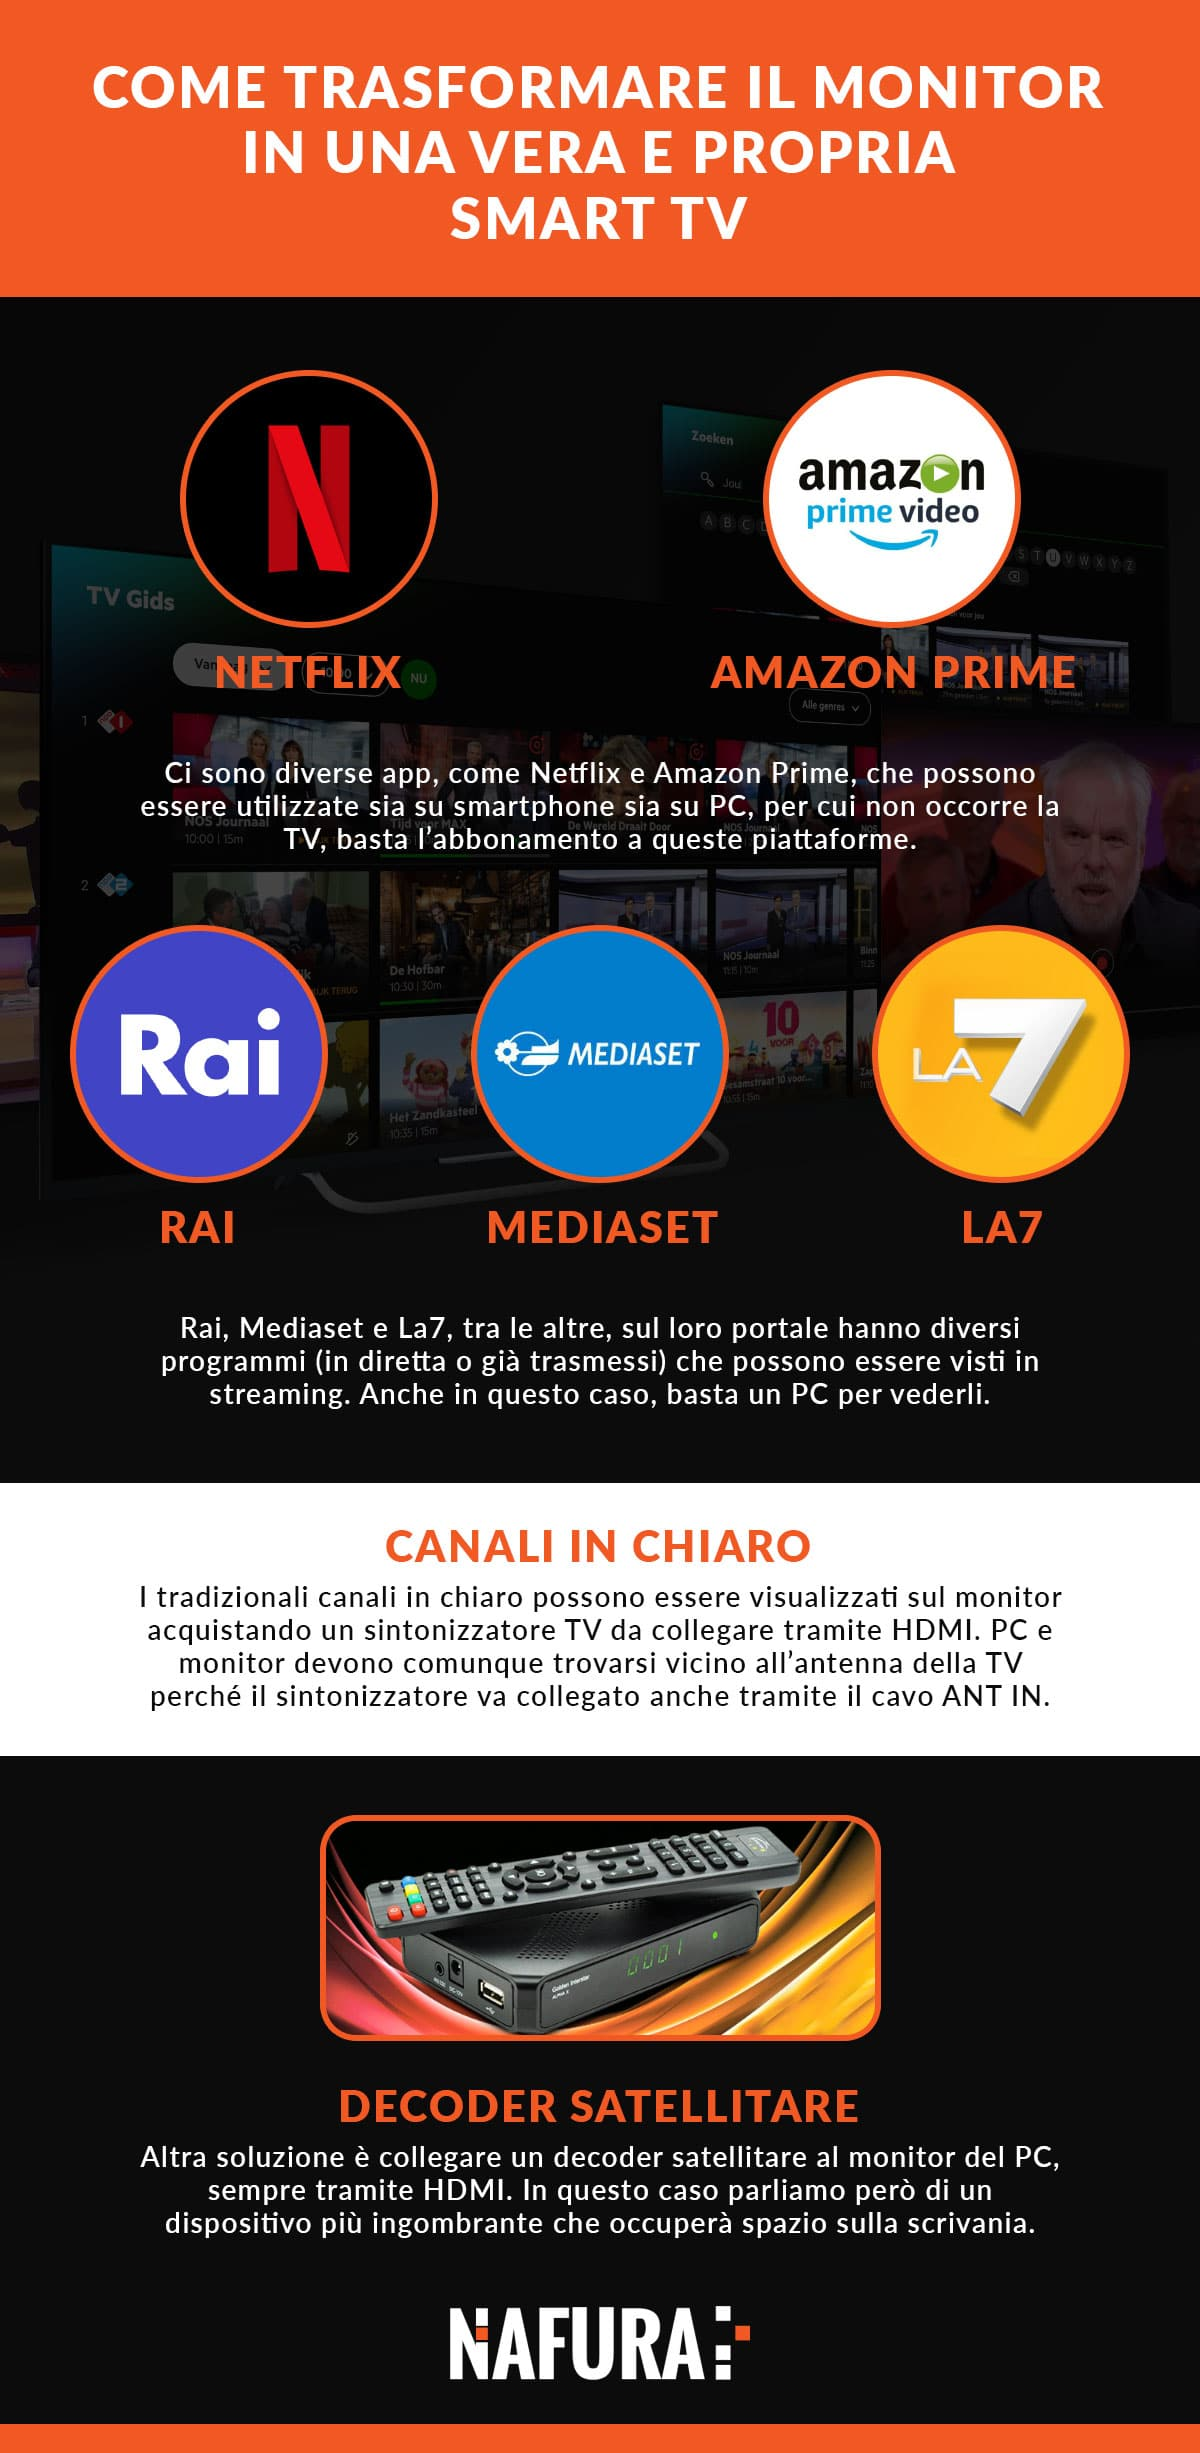 netflix, amazon prime, decoder satellitare